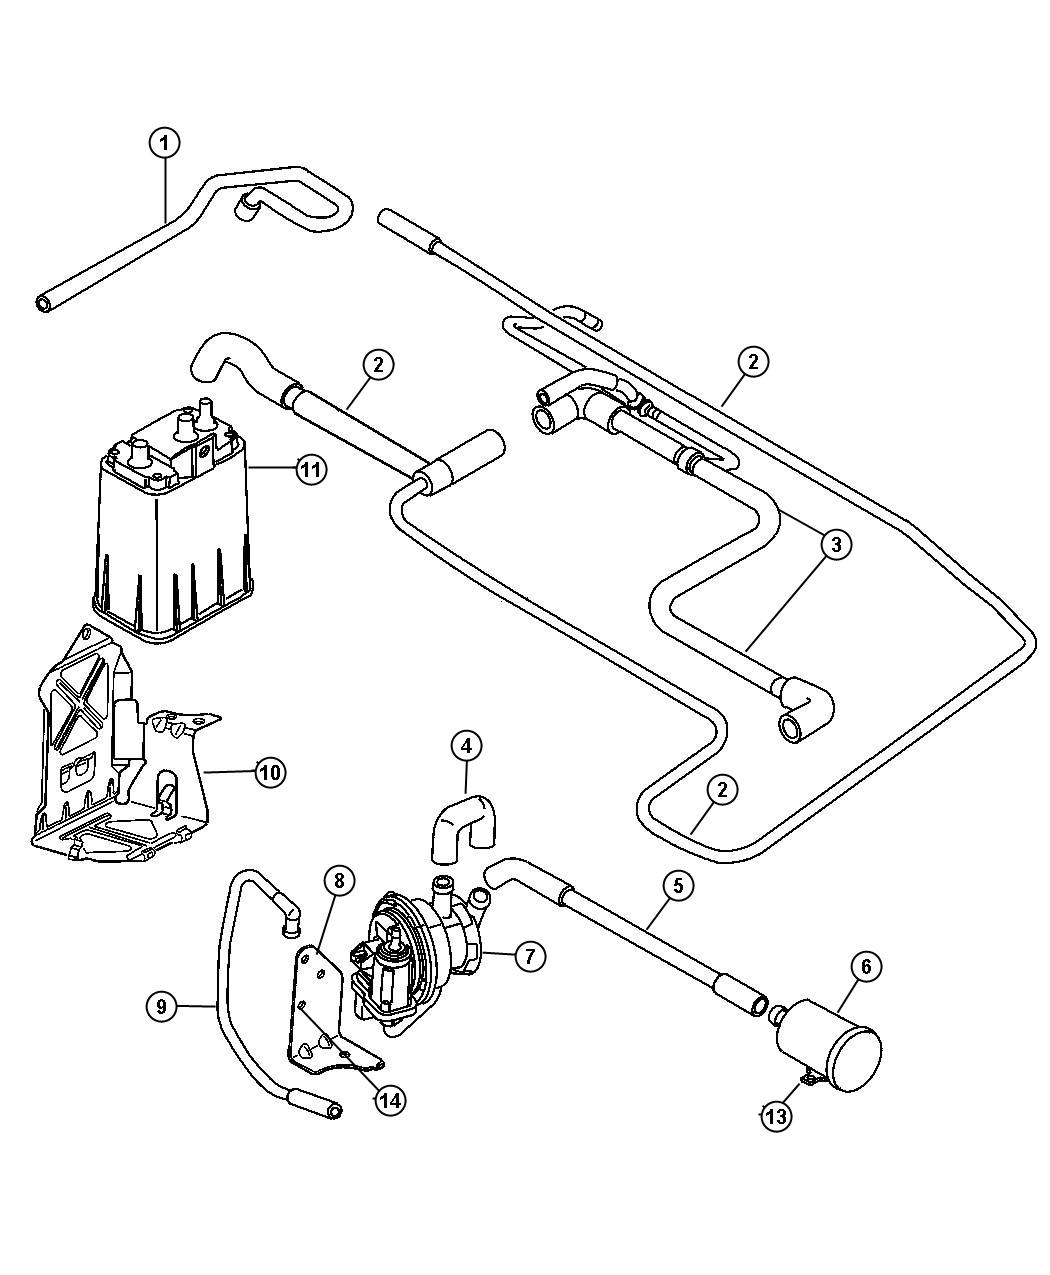 Sunfire Coolant Diagram Wiring Diagrams Land Rover Discovery Fuse For 03 1998 Chev Venture With 3400 Sfi Engine